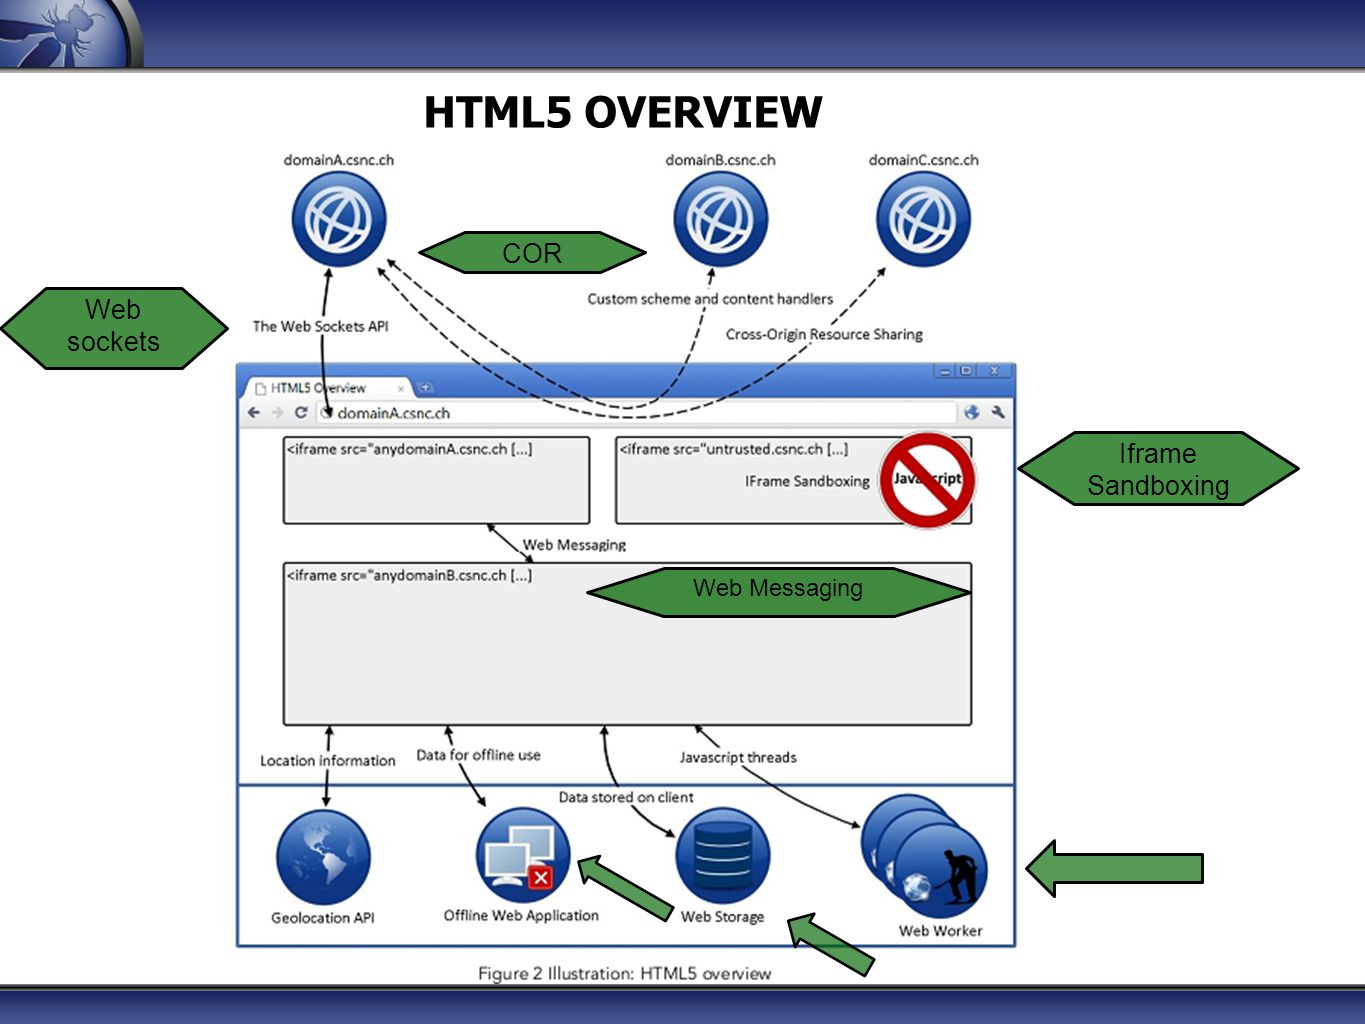 Html5 OVERVIEW COR Web sockets Iframe Sandboxing Web Messaging